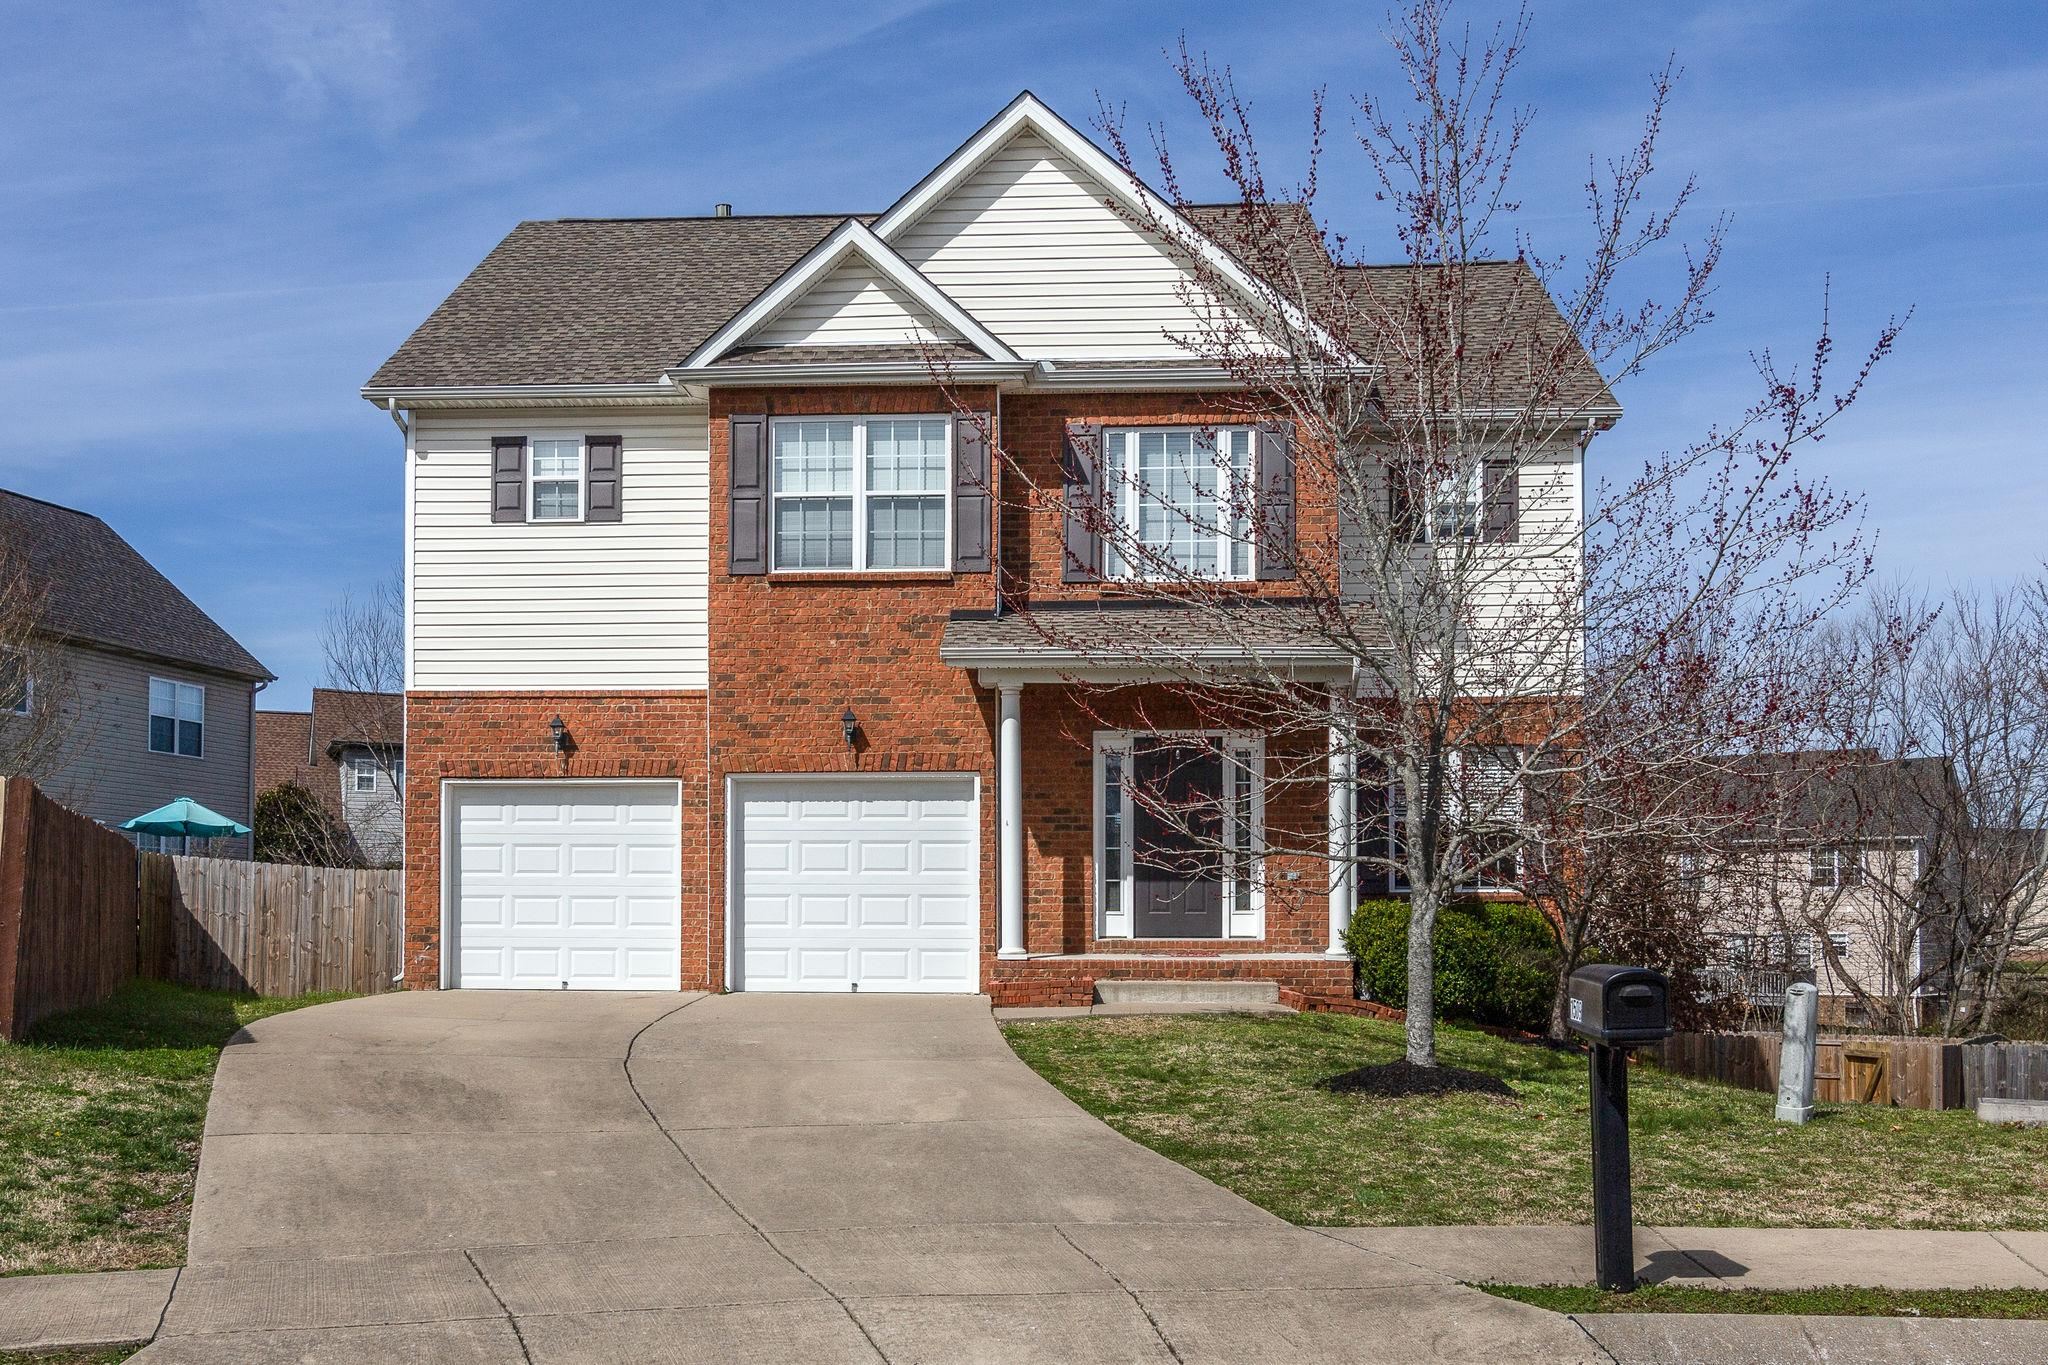 1509 Callender Rd, Spring Hill, Tennessee